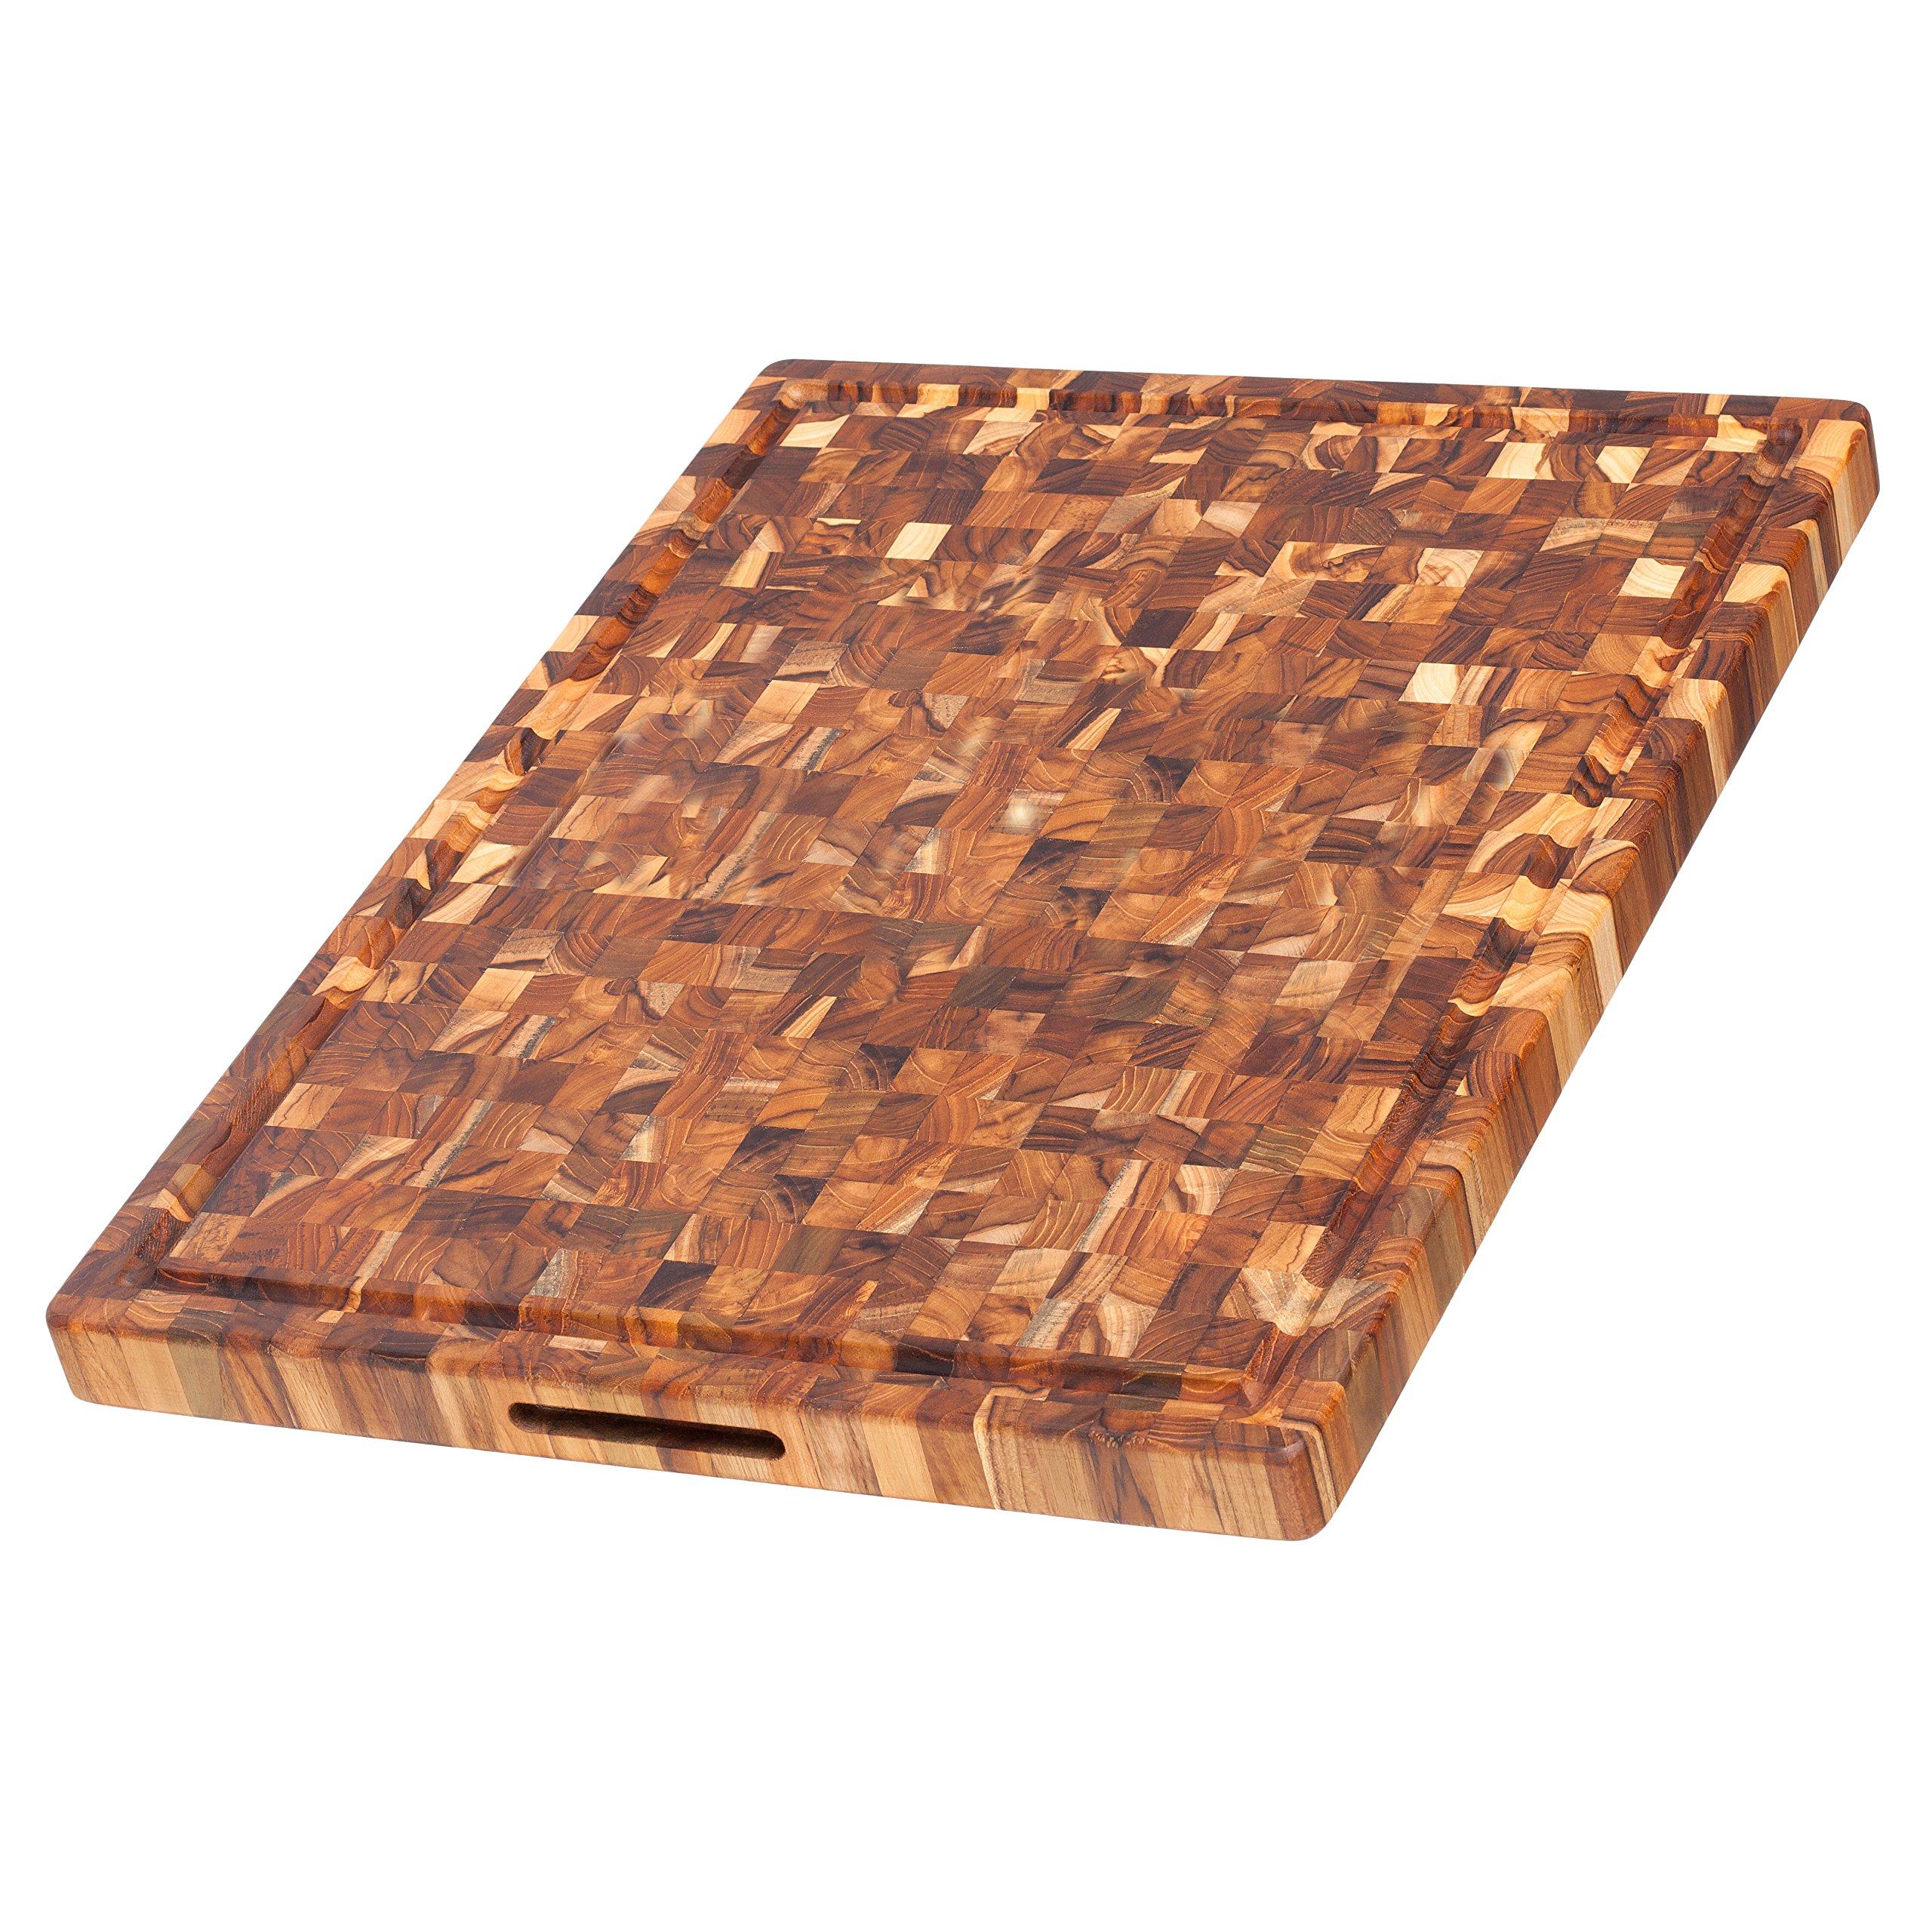 Teak Cutting Board - Rectangle Butcher Block With Juice Canal And Hand Grips (24 x 18 x 1.5 in.) - By Teakhaus by Teakhaus